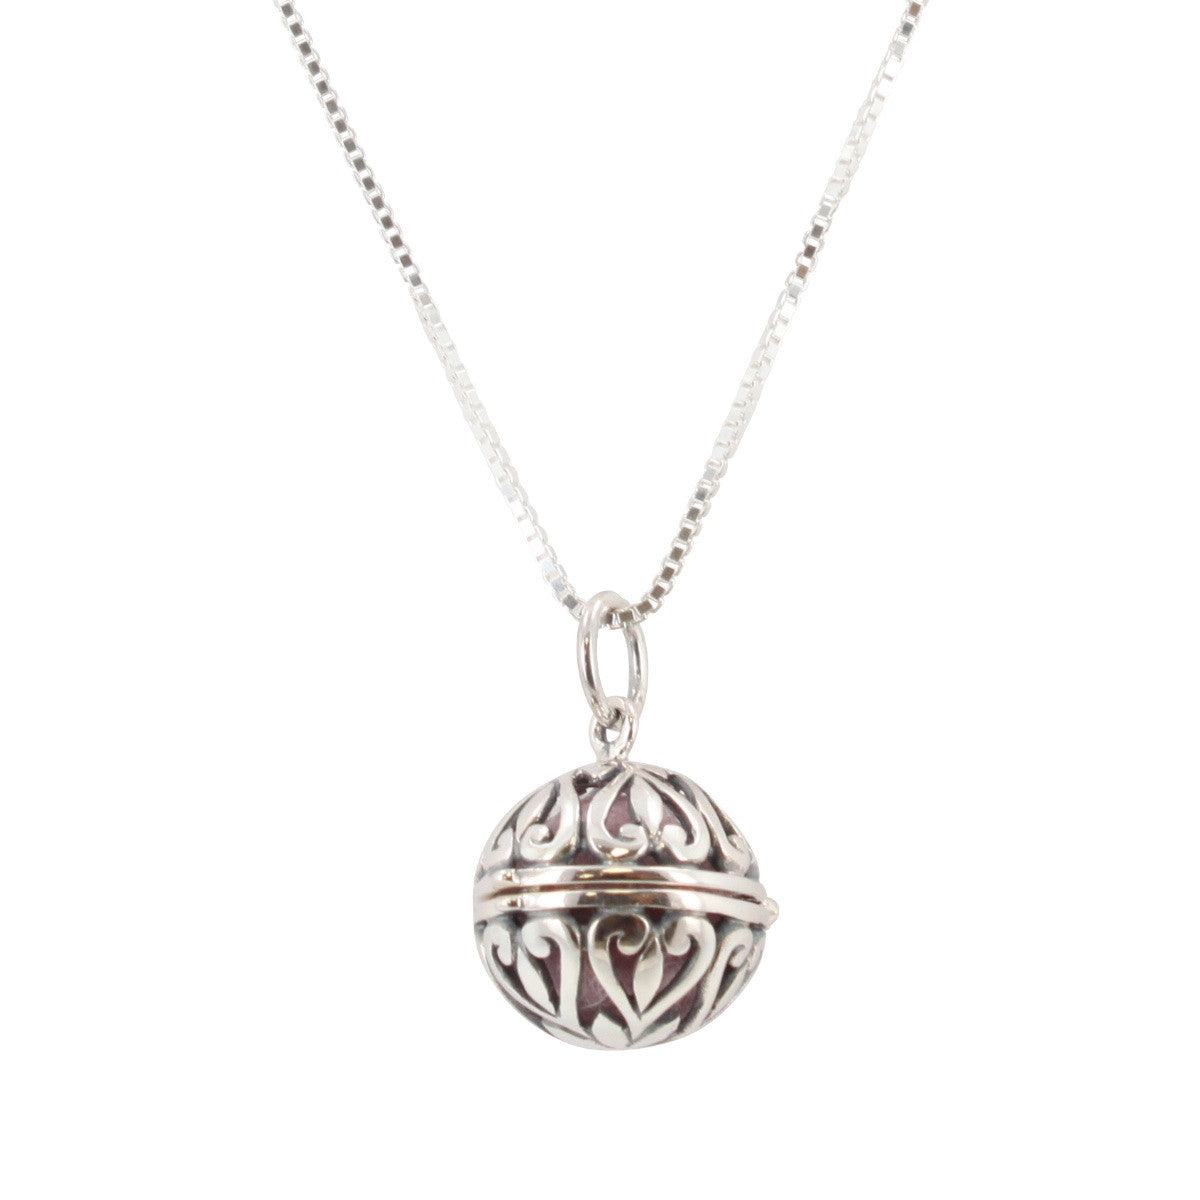 Silver Locket Necklace Fragrance Essential Oil Aromatherapy Diffuser Pendant !!